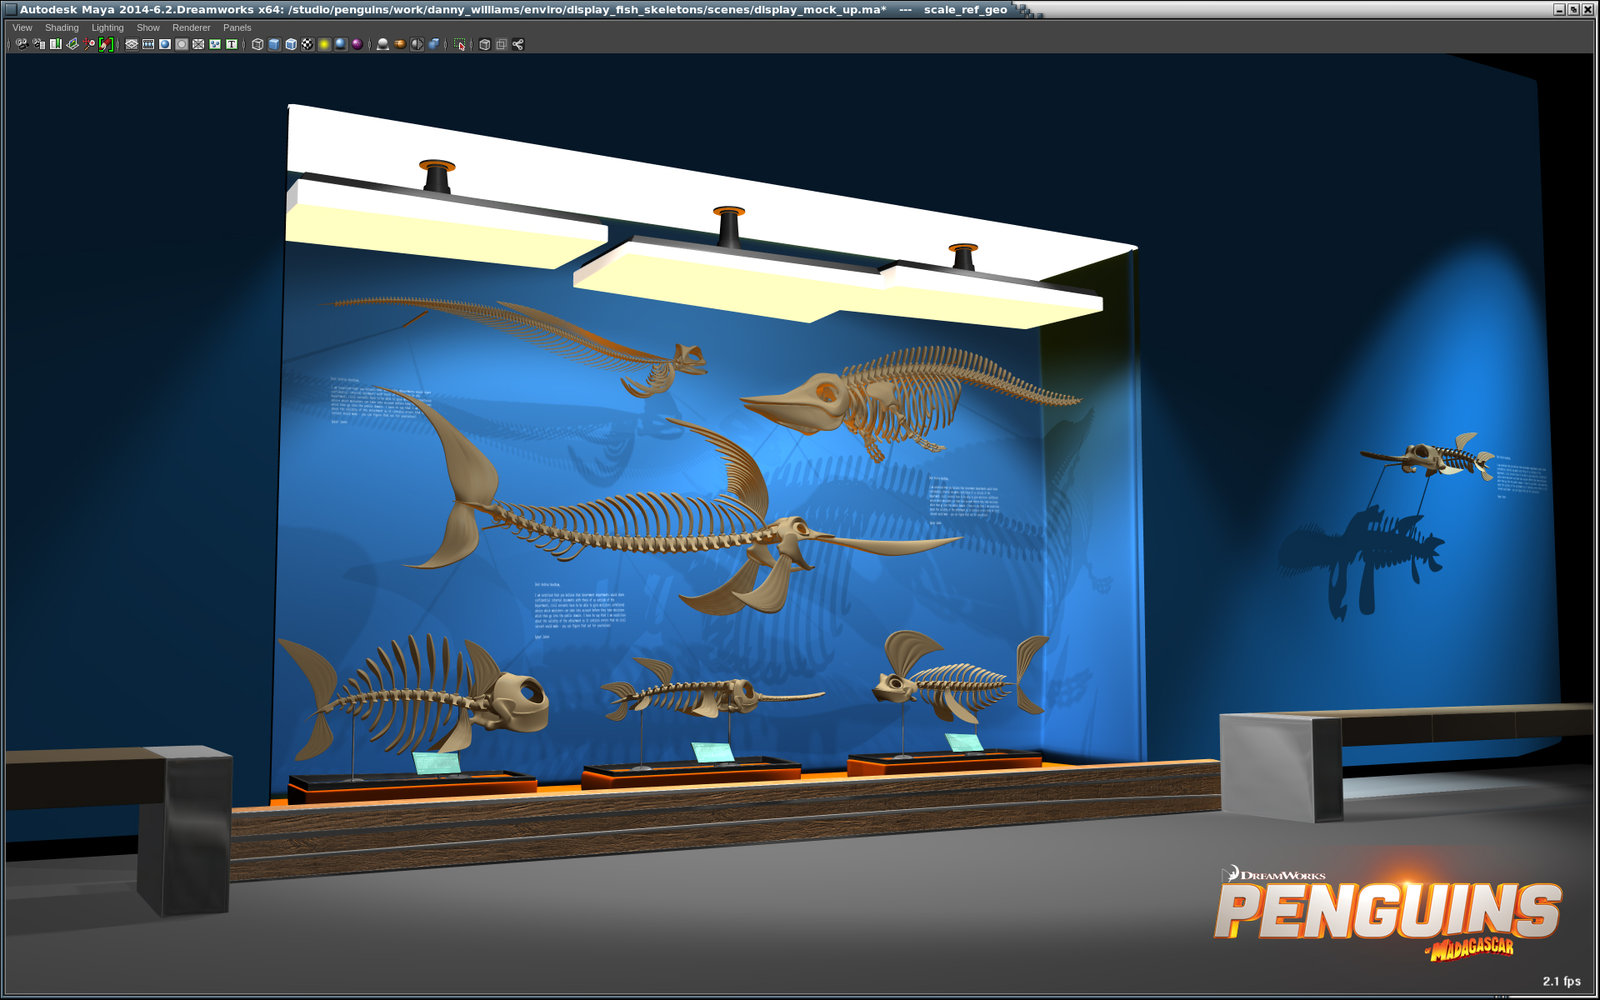 Aquarium Skeleton diorama design (Maya Viewport 2.0)